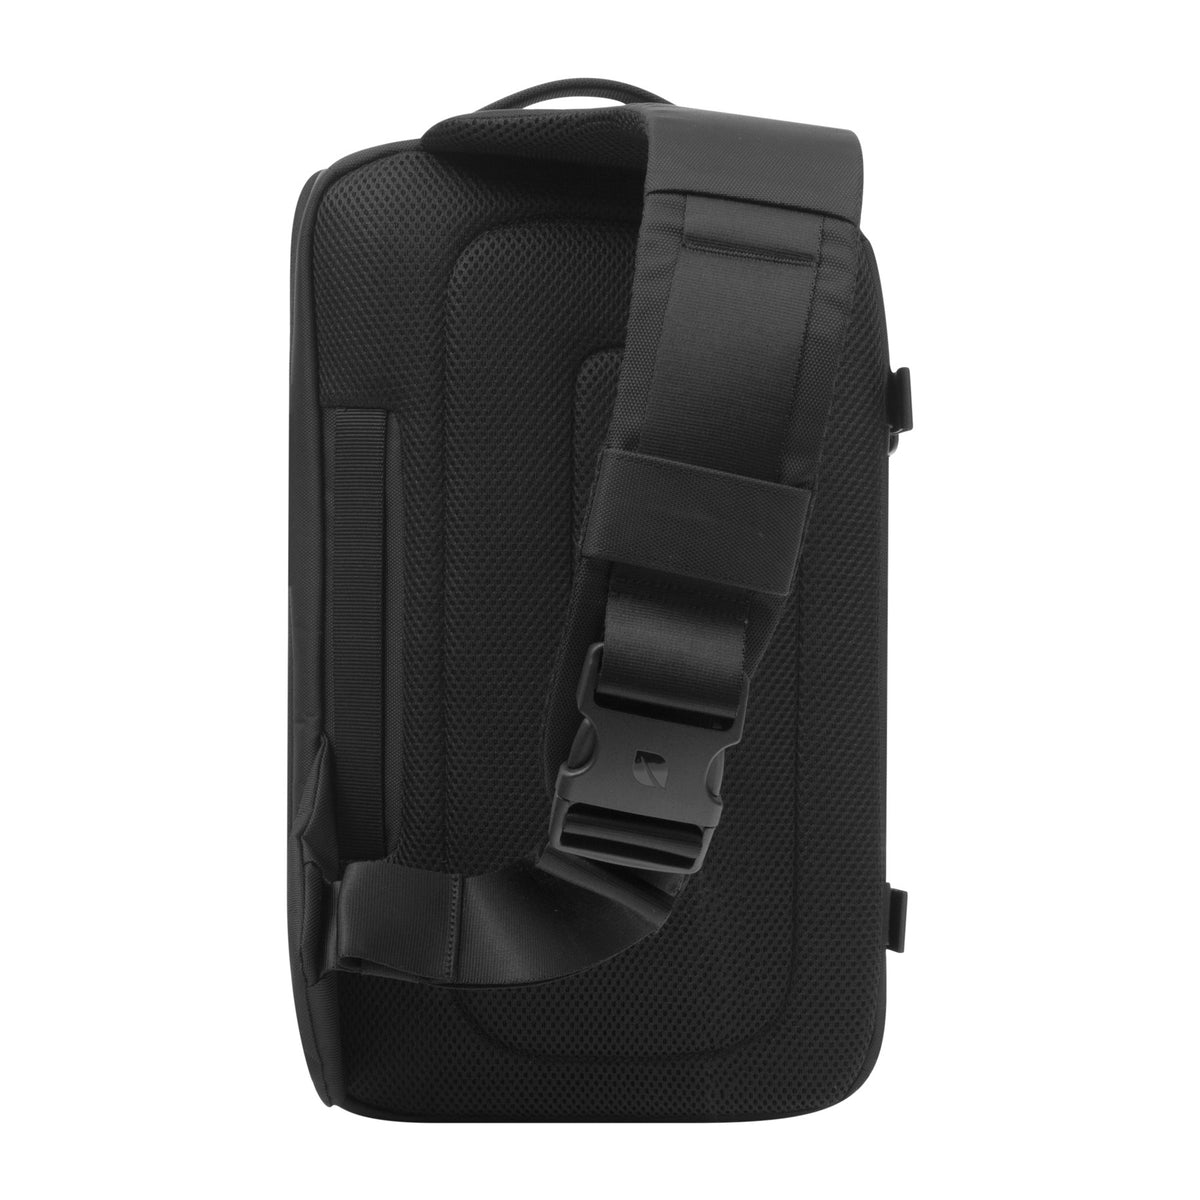 Incase: DSLR Sling Pack - Black (CL58067)